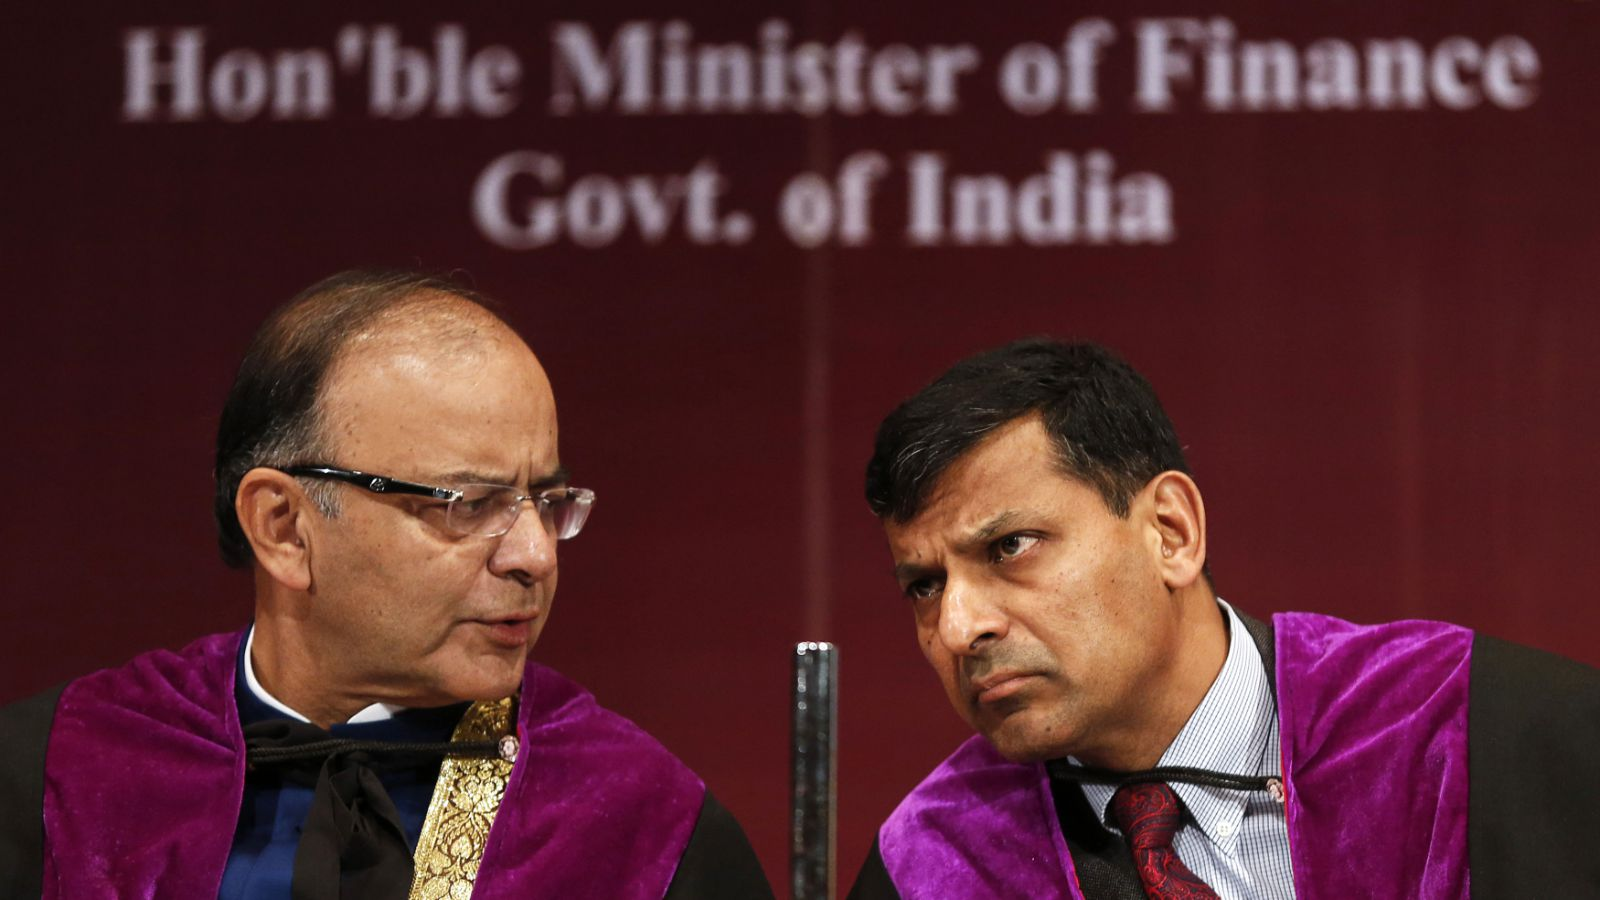 India-Budget-Raghuram-Rajan-Rate-Cut